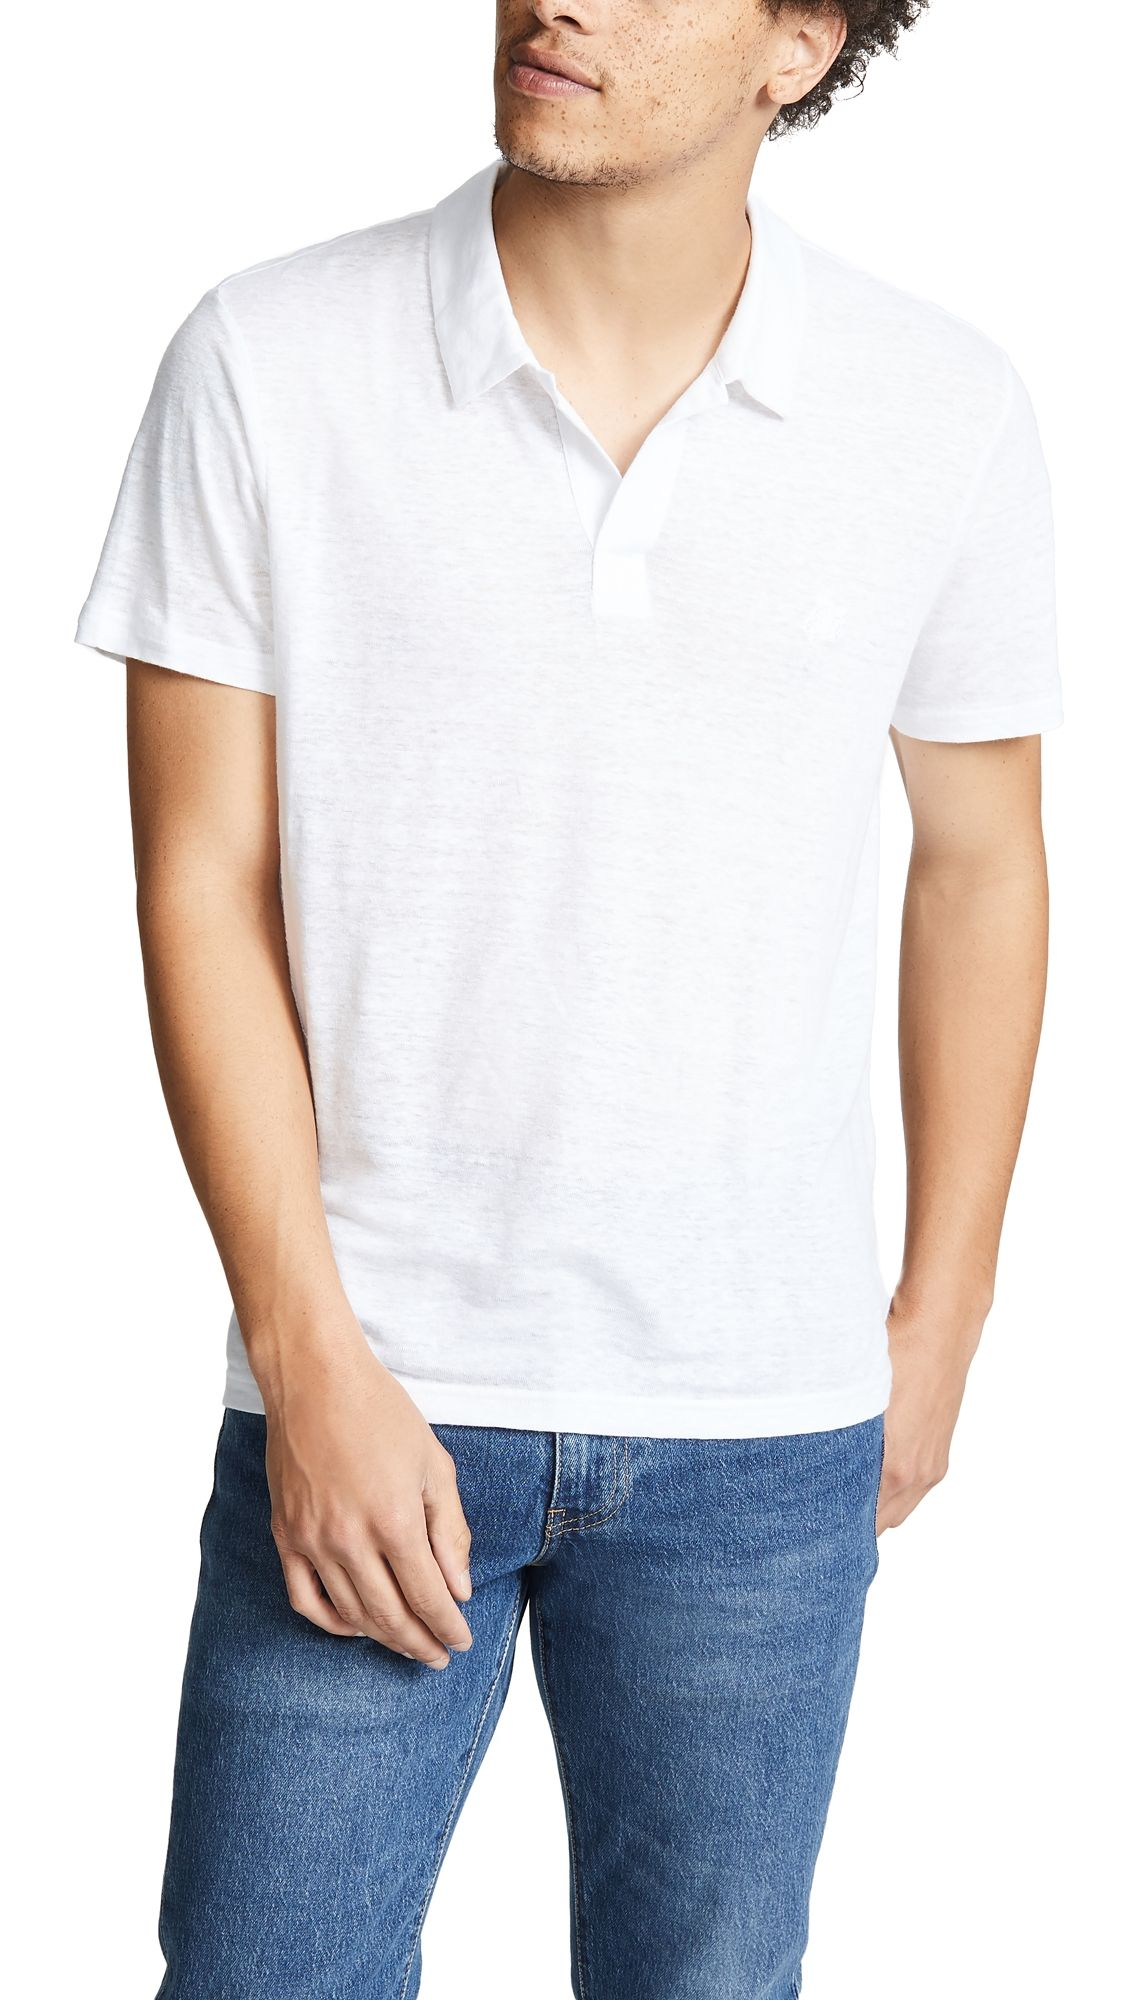 Vilebrequin Linen Pyramid Polo Shirt In White Modesens Polo Shirt Style Shirts Vilebrequin